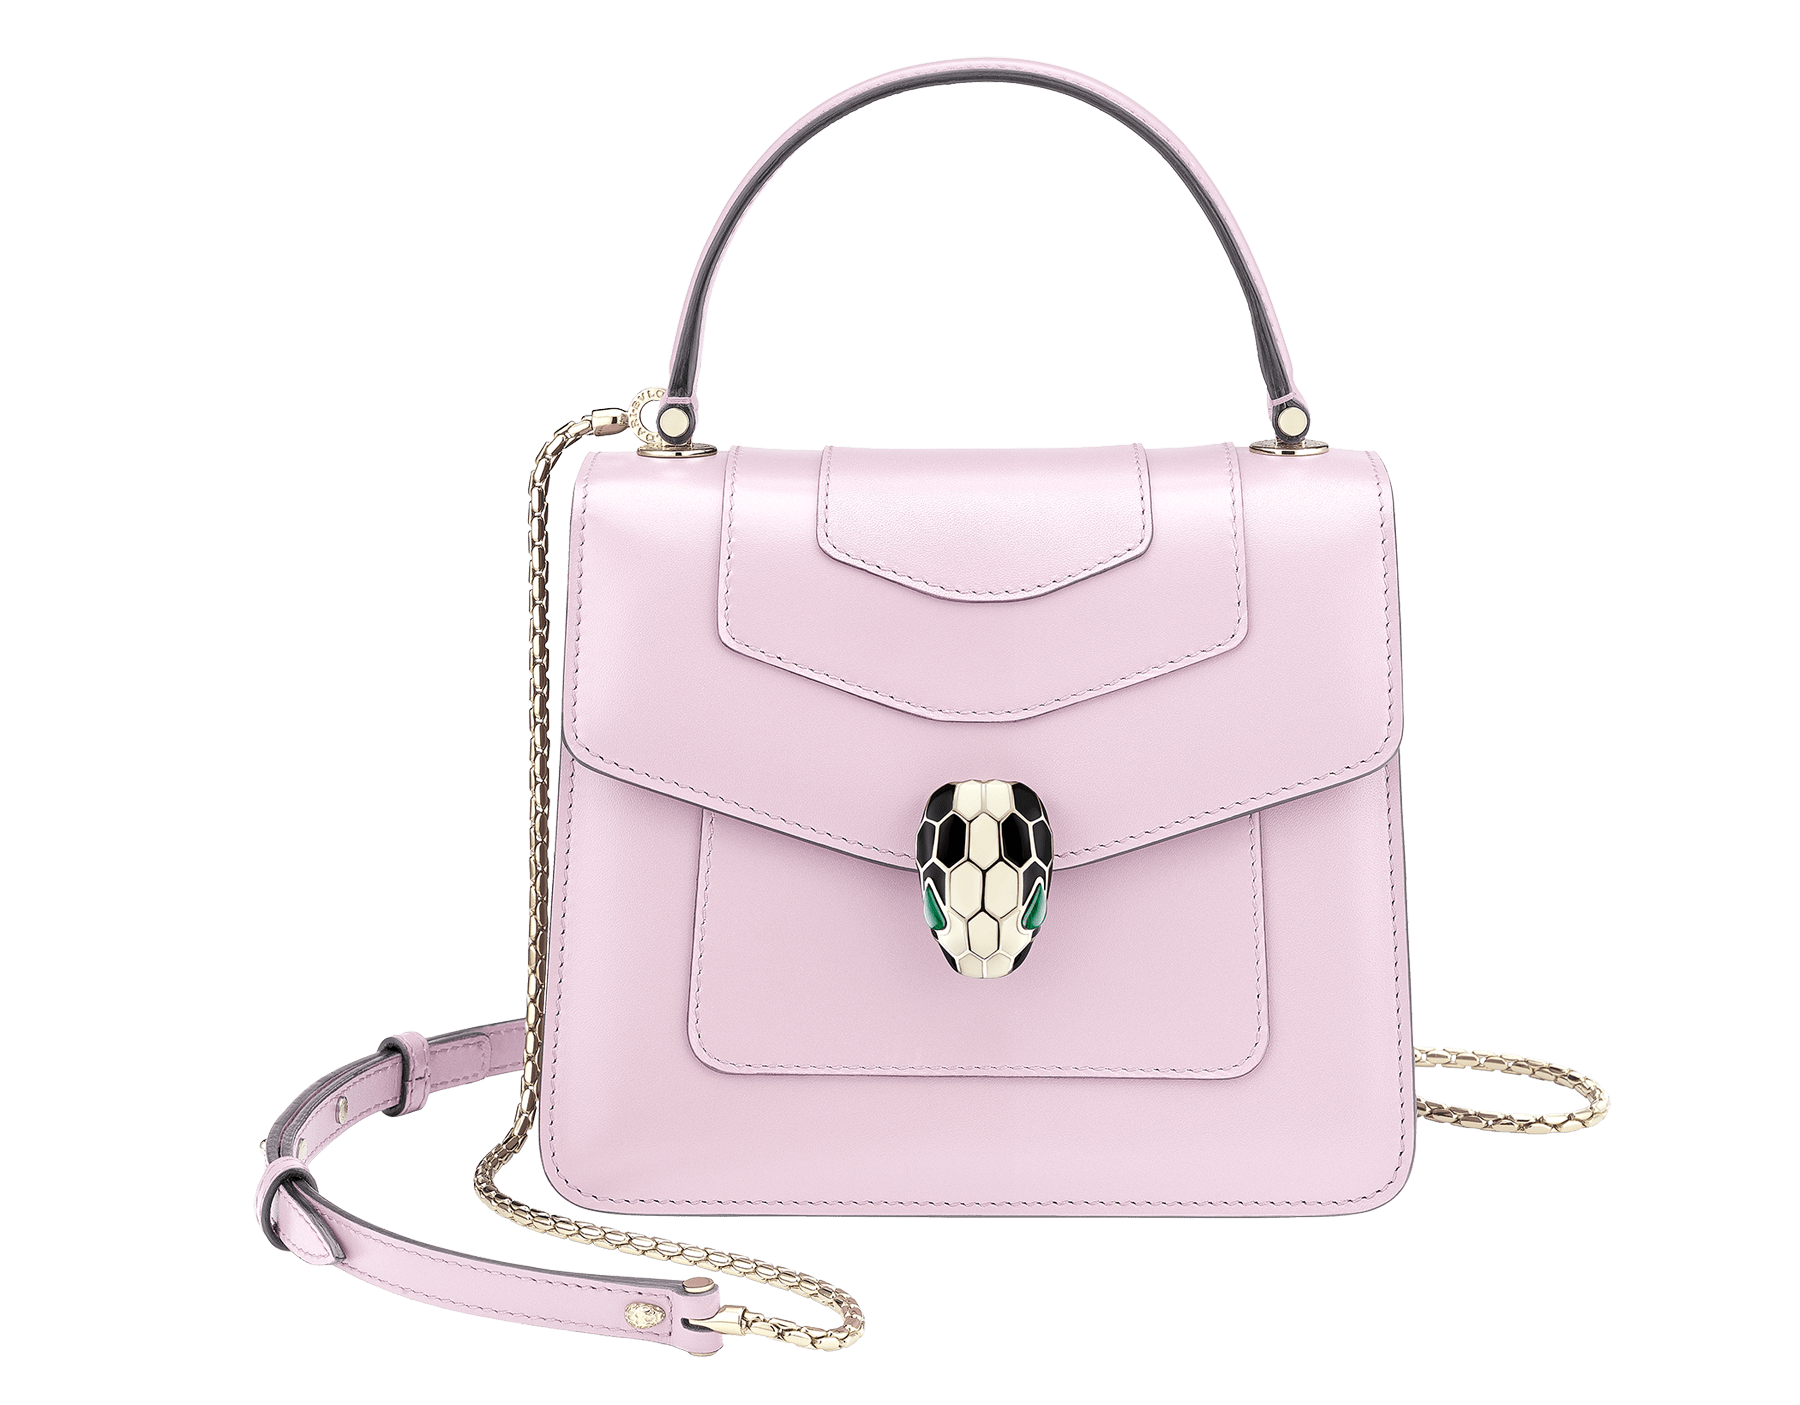 Serpenti Forever crossbody bag in rosa di francia calf leather. Iconic snakehead closure in light gold plated brass embellished with black and white enamel and green malachite eyes. 288712 image 1